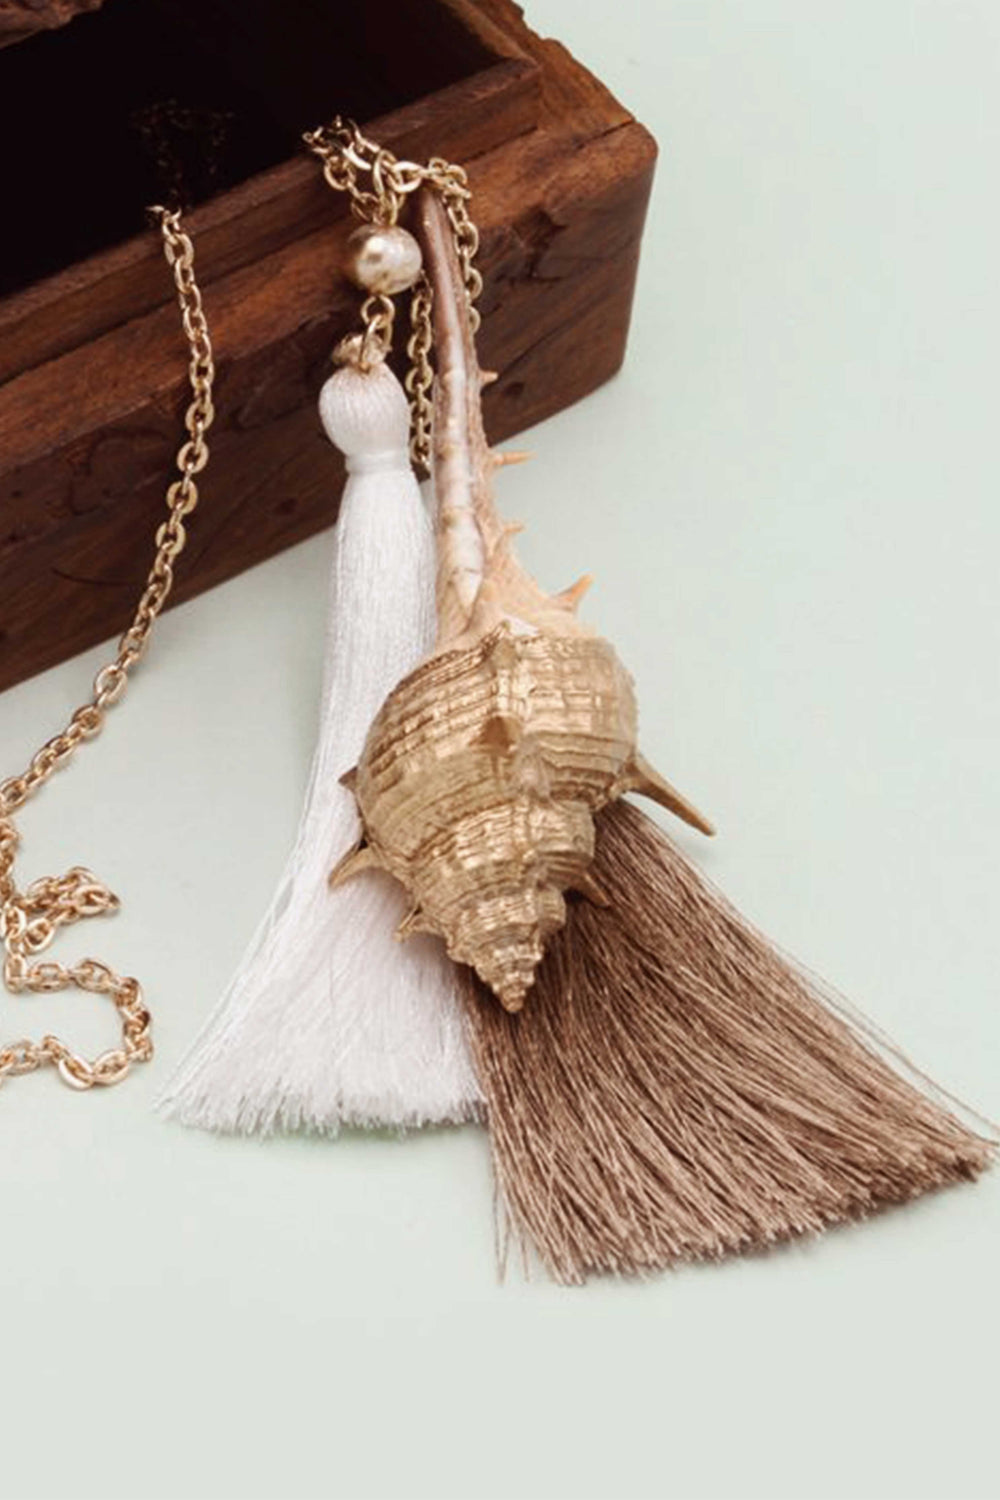 BEACH SIDE NECKLACE - Chic Le Frique